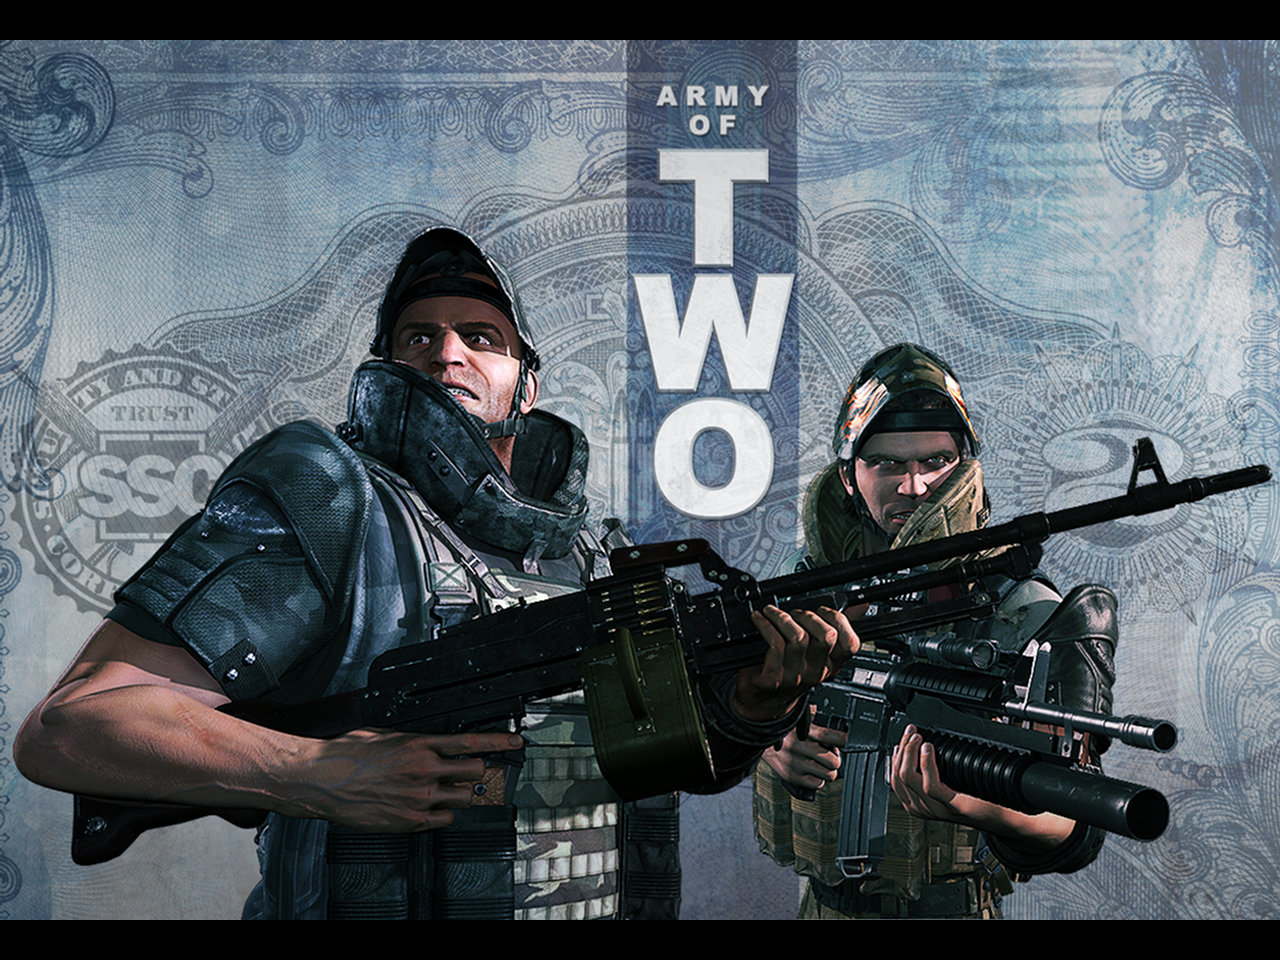 Desktop Wallpapers: Army Of Two